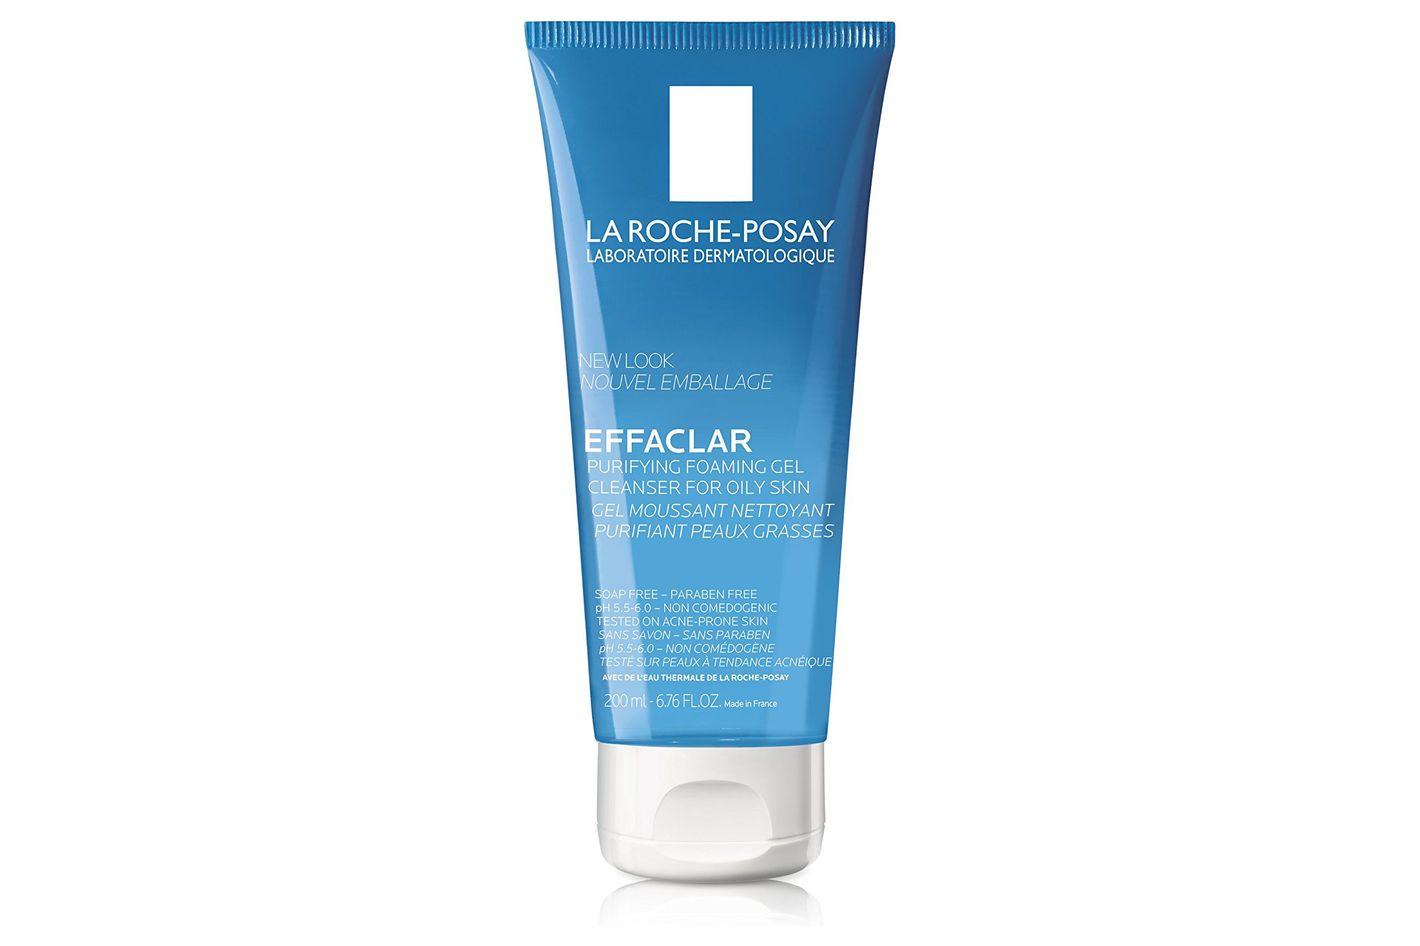 La Roche-Posay Effaclar Purifying Foaming Gel Face Wash Cleanser